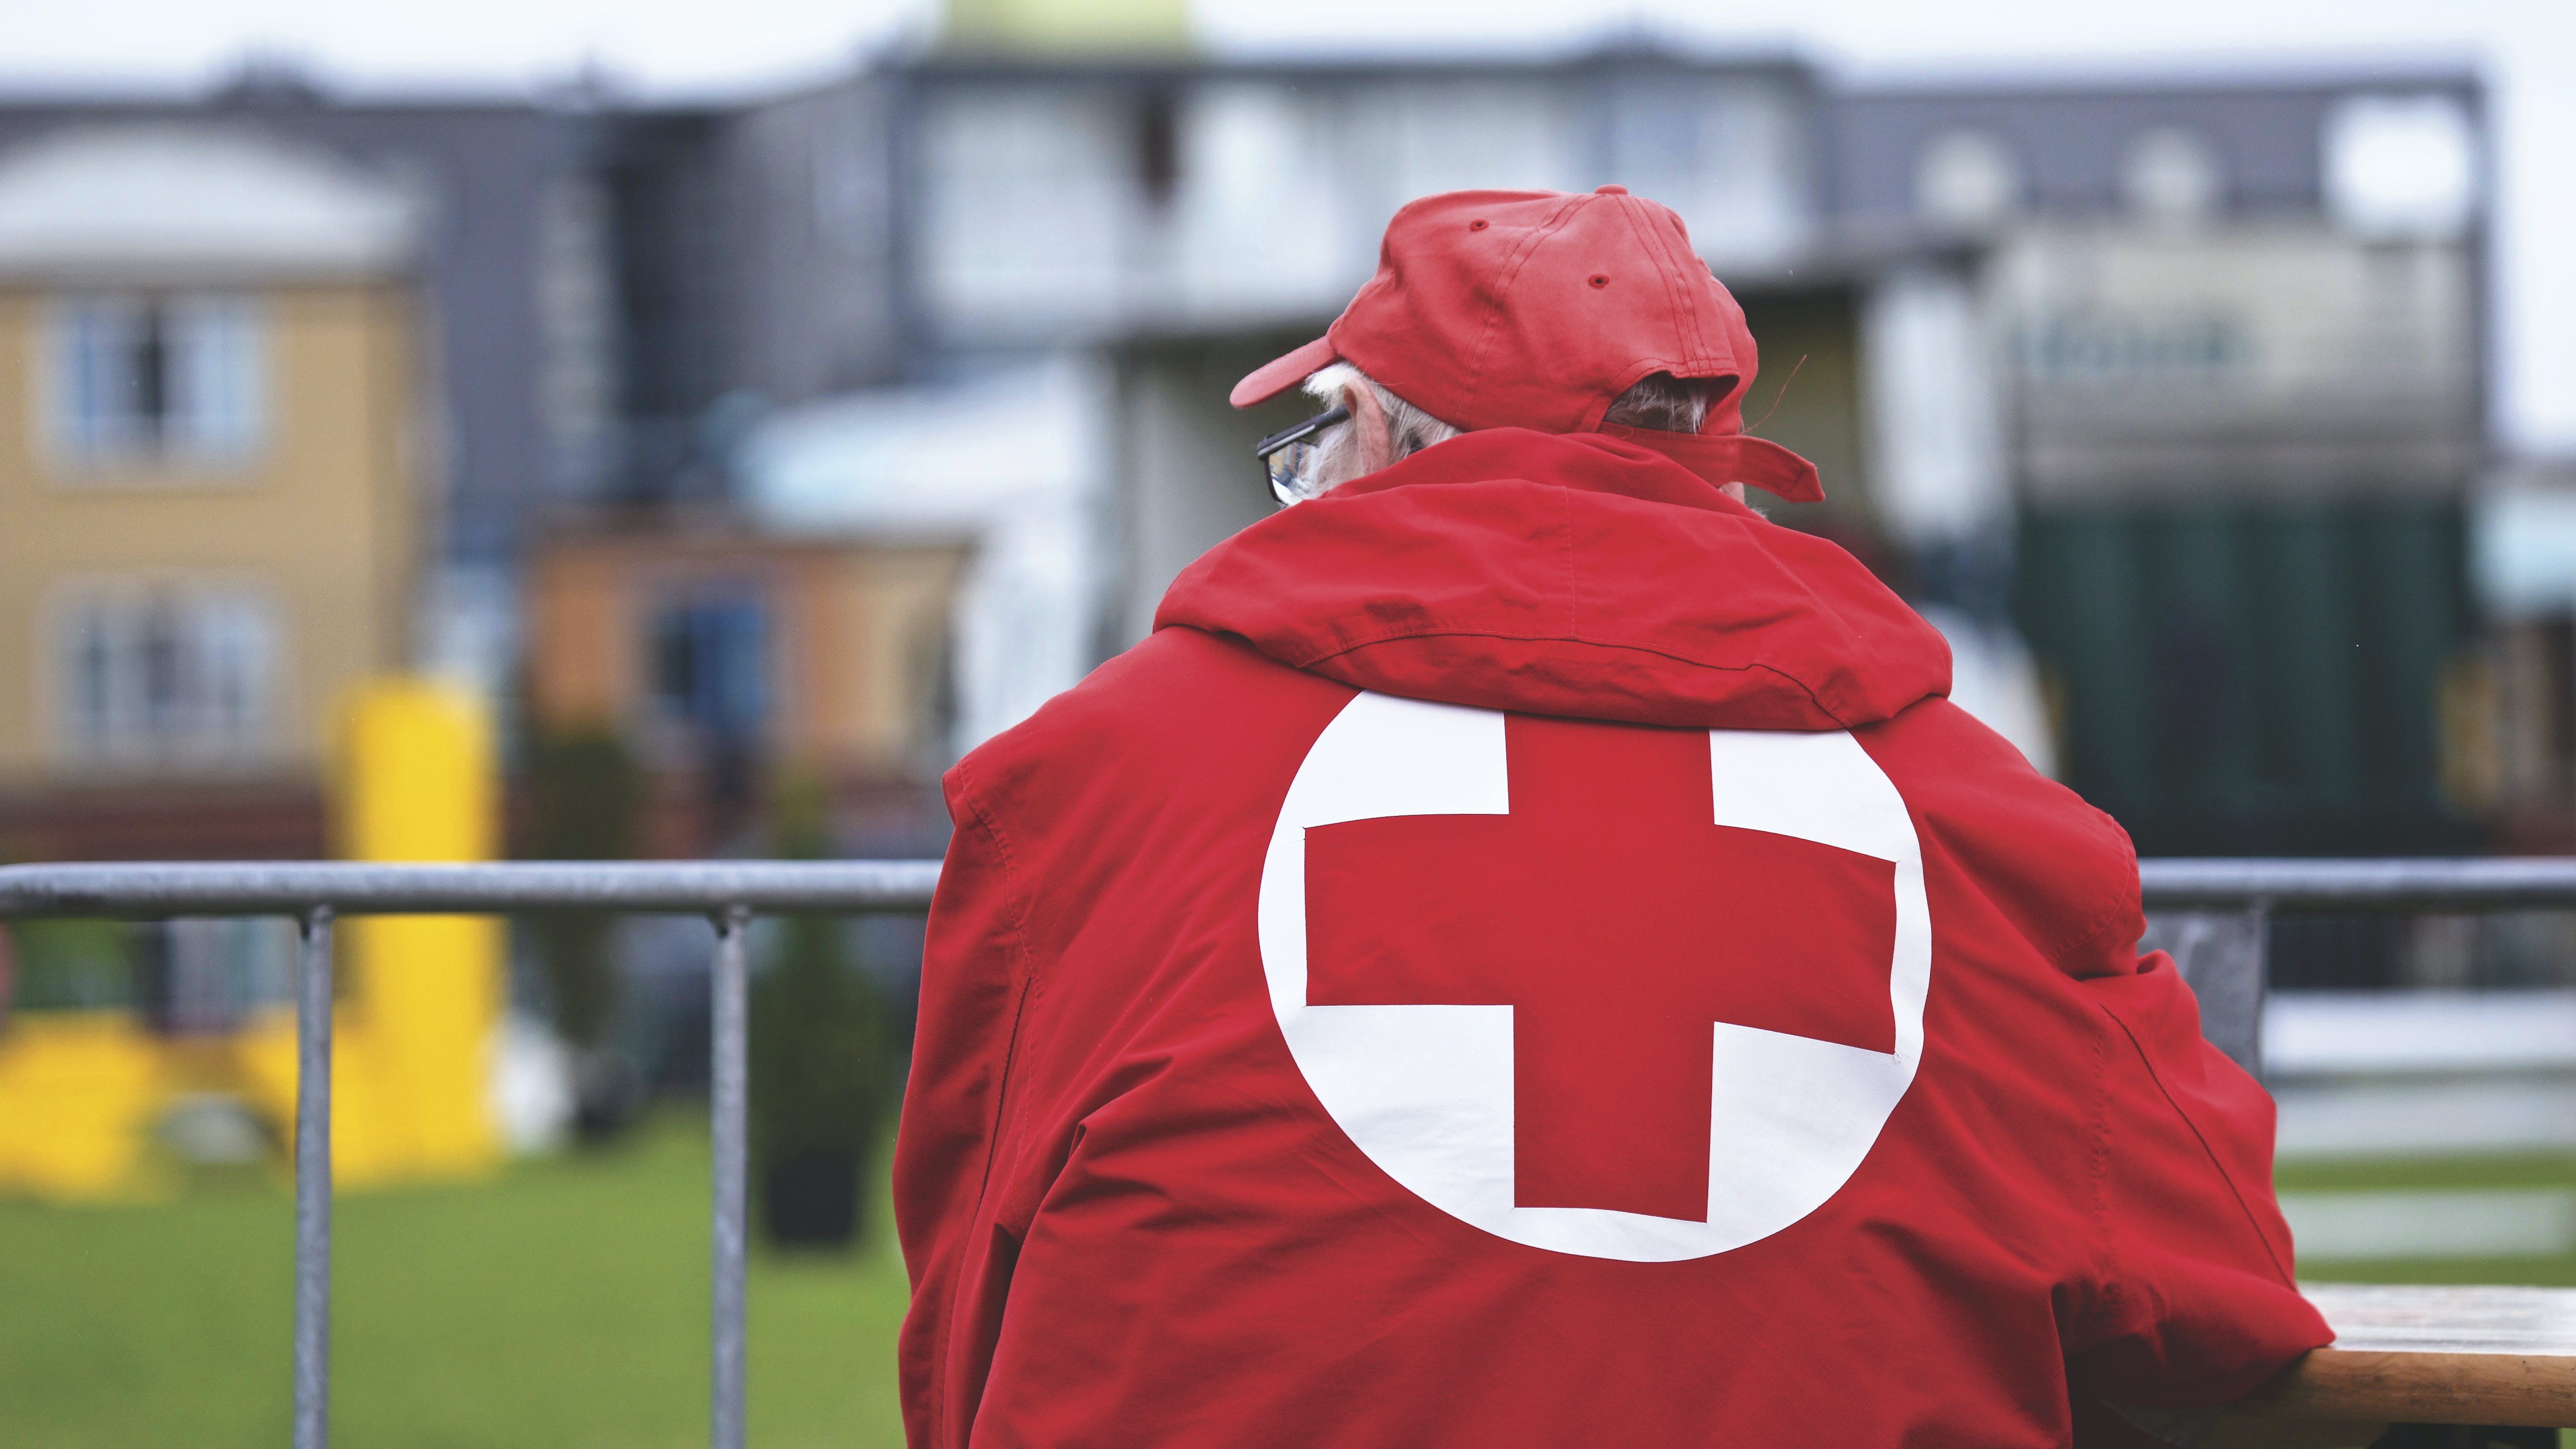 Free stock photo of man, person, red cross, elderly